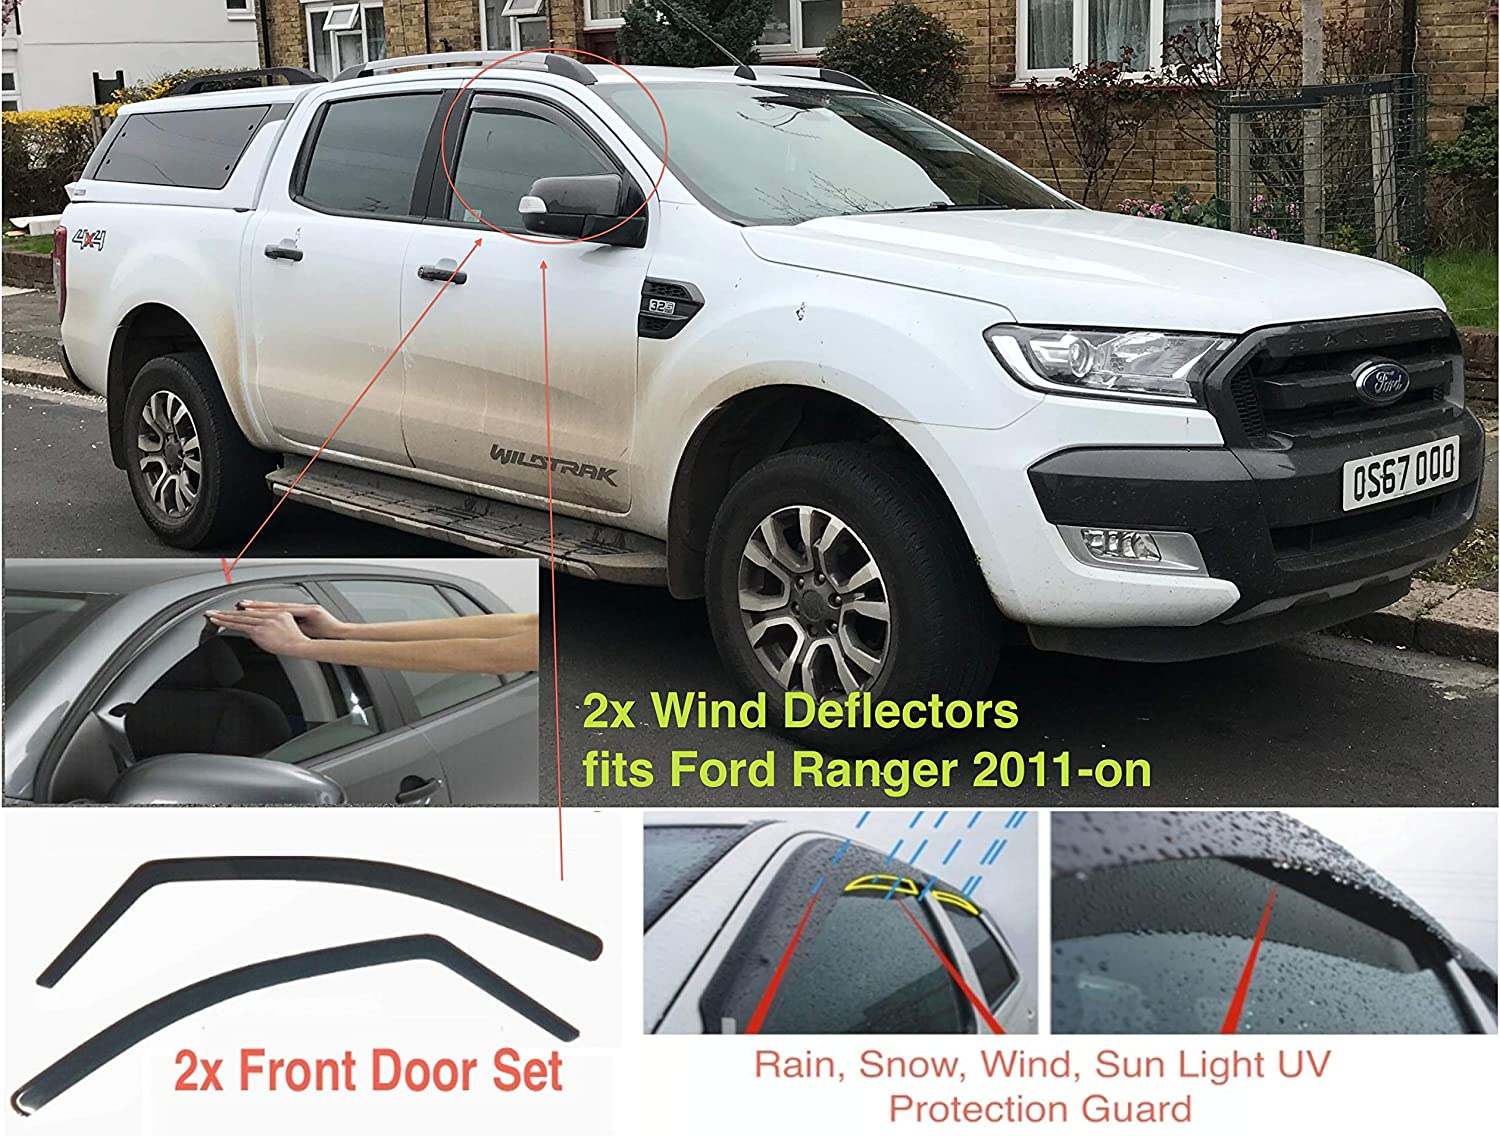 T6 AC WOW 2x Wind Deflectors Compatible with Ford Ranger Double Cab 2011-present Wildtrak Smoke Tinted Acrylic Glass Door Side Windows Interior In-Channel Visors Rain Snow Sun Guards